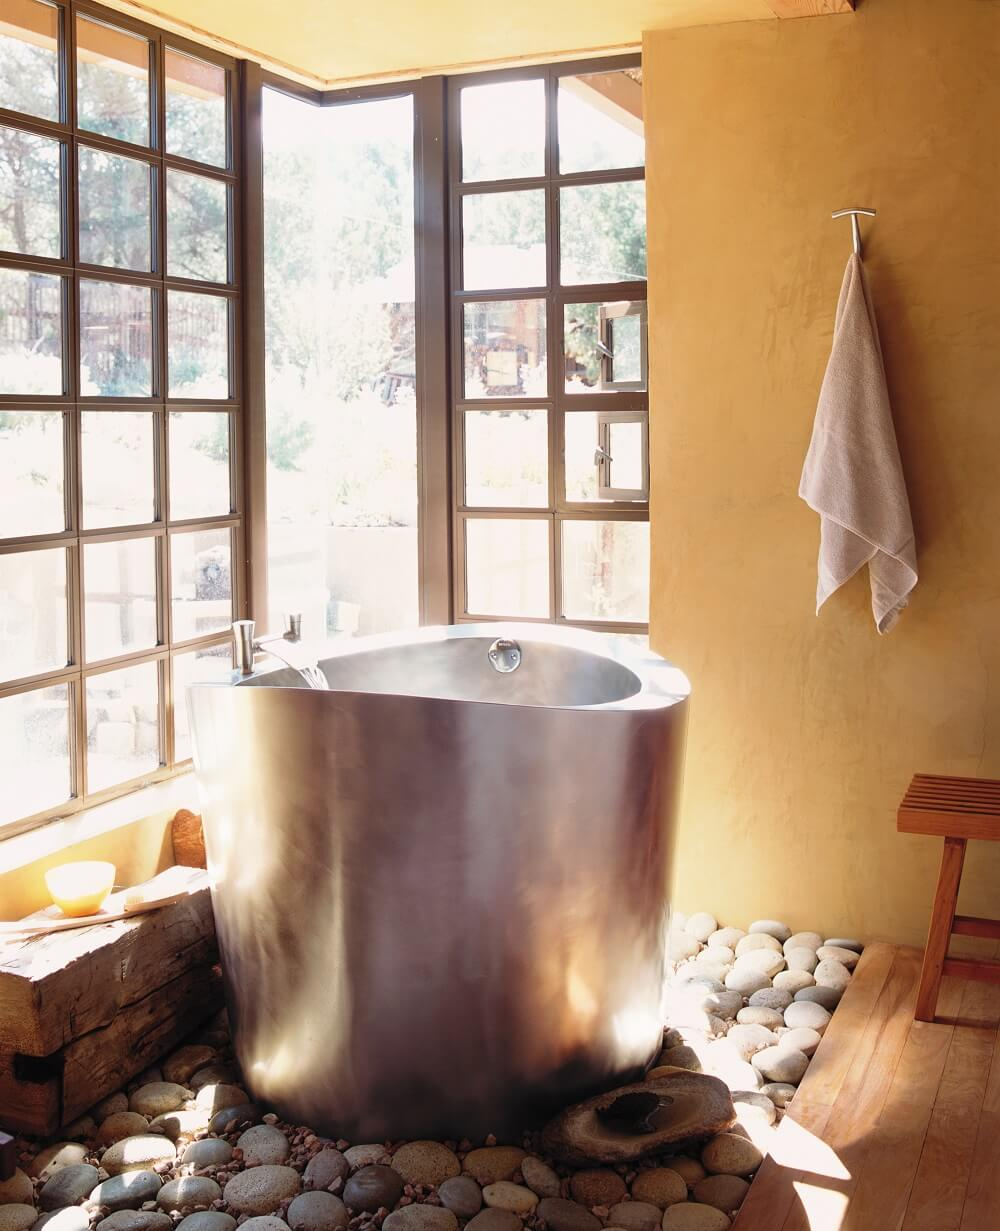 Japanese Soaking Tubs - Japanese Baths - Outdoor Soaking Tub ... on zen bathroom windows, zen bathroom furniture, zen bathroom jacuzzi, zen flooring, zen bathroom mirrors, zen bathroom faucets, zen bathroom colors, zen bathroom light fixtures, zen bathroom remodeling ideas, zen bathroom vanity, zen bathroom sinks, zen shower curtains, zen bath, zen decks, zen bathroom lighting, zen tub,